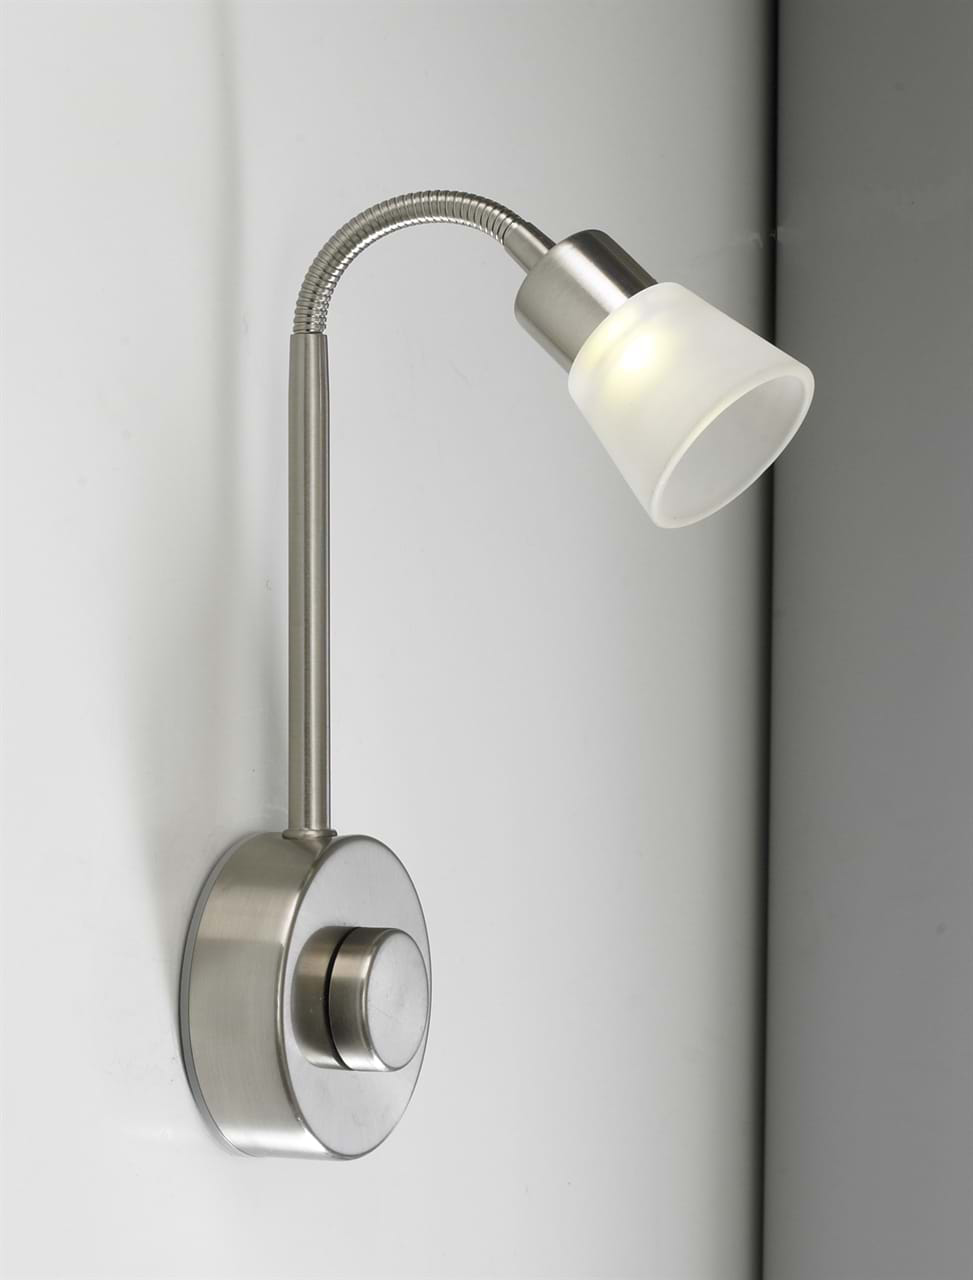 Sycamore Led Bedside Wall Light In Brushed Nickel Sy7307 K Lighting Supplies